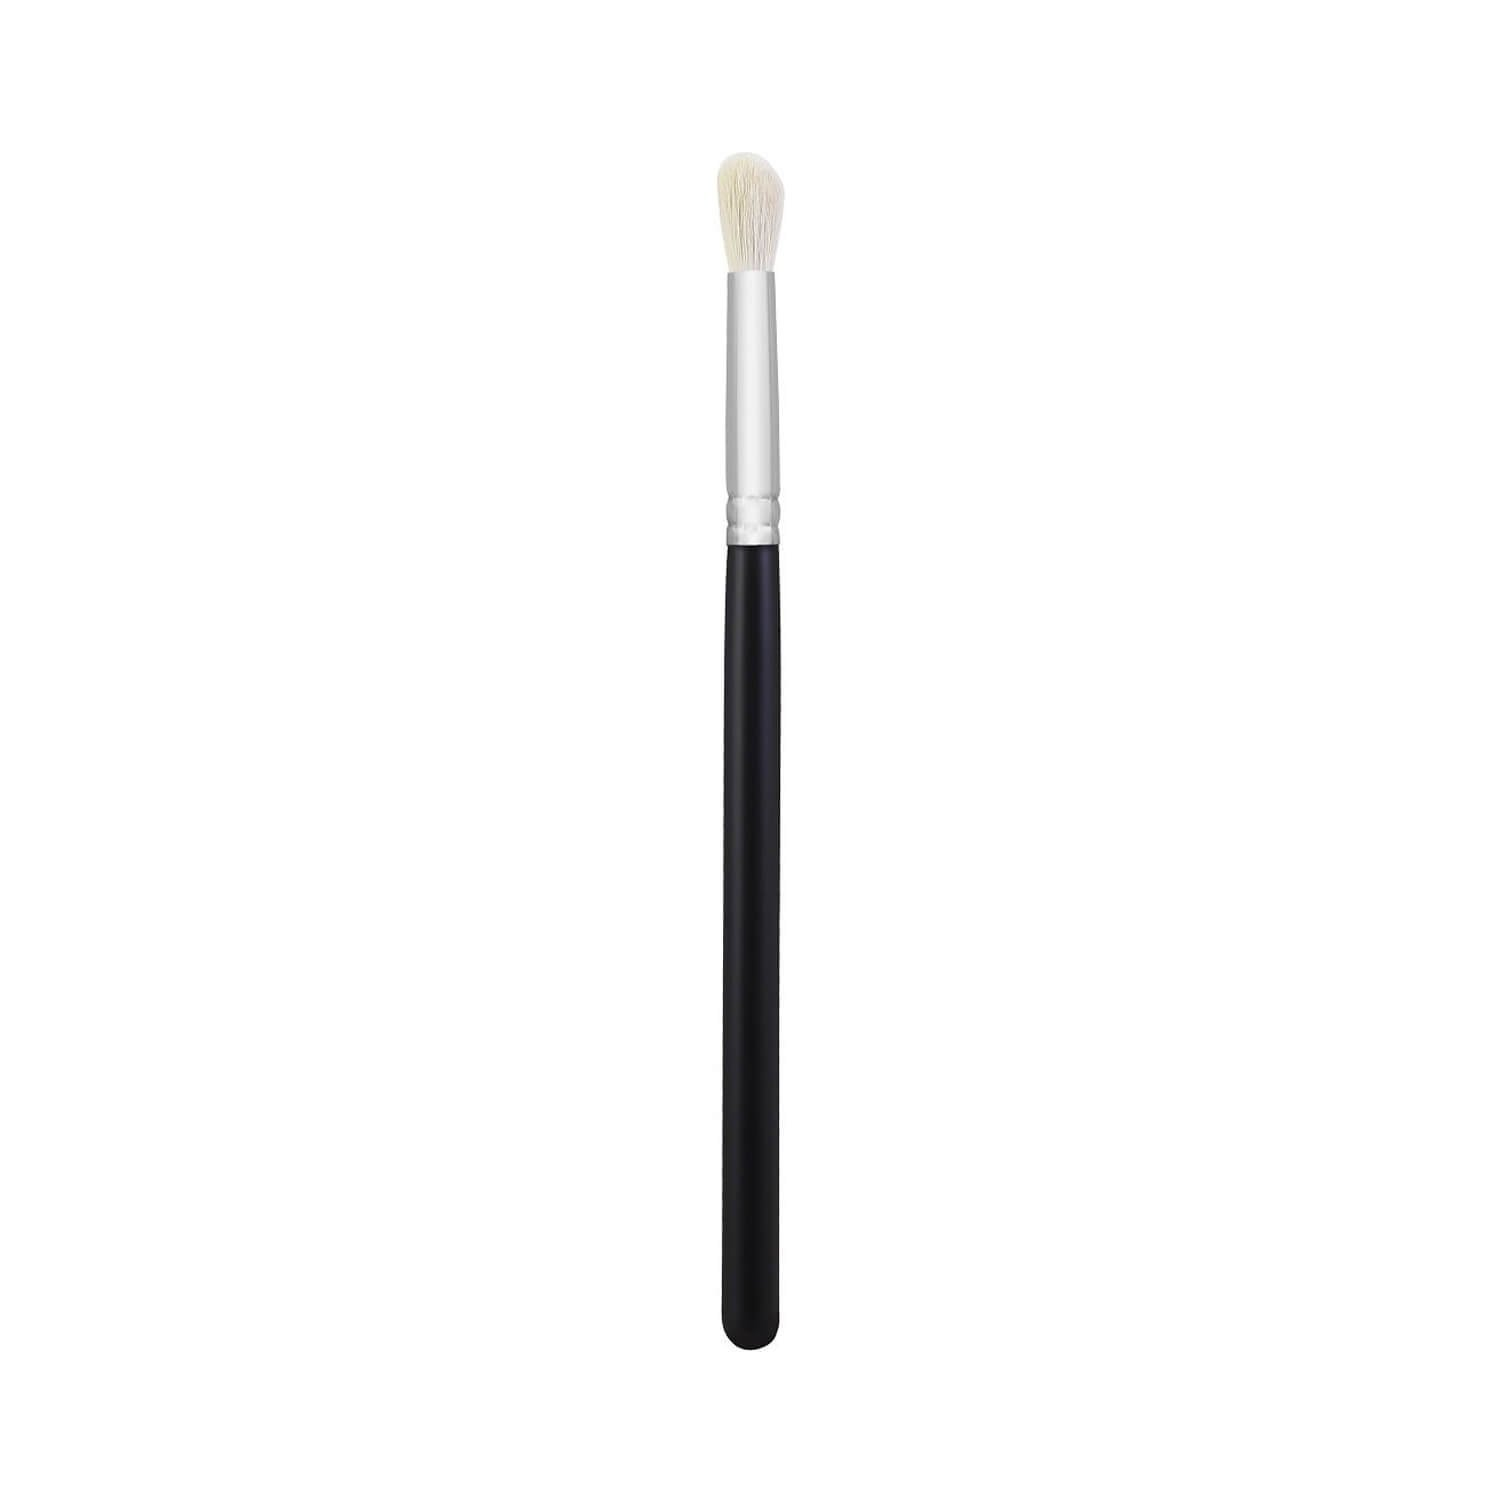 Morphe Studio Pro Brush - Firm Blending Crease - M441 morphe brushes